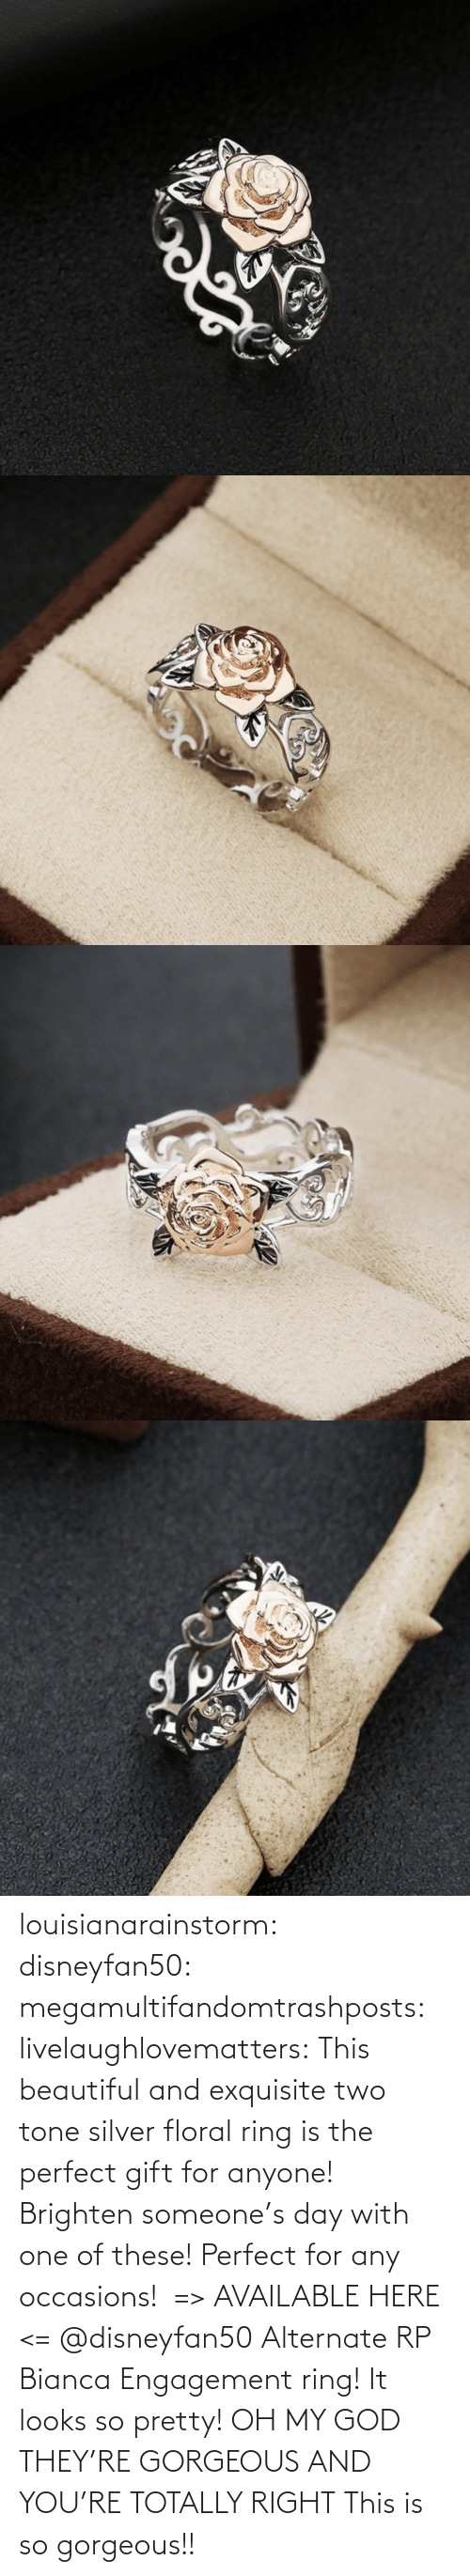 tone: louisianarainstorm: disneyfan50:  megamultifandomtrashposts:  livelaughlovematters:  This beautiful and exquisite two tone silver floral ring is the perfect gift for anyone! Brighten someone's day with one of these! Perfect for any occasions!  => AVAILABLE HERE <=    @disneyfan50 Alternate RP Bianca Engagement ring! It looks so pretty!  OH MY GOD THEY'RE GORGEOUS AND YOU'RE TOTALLY RIGHT    This is so gorgeous!!